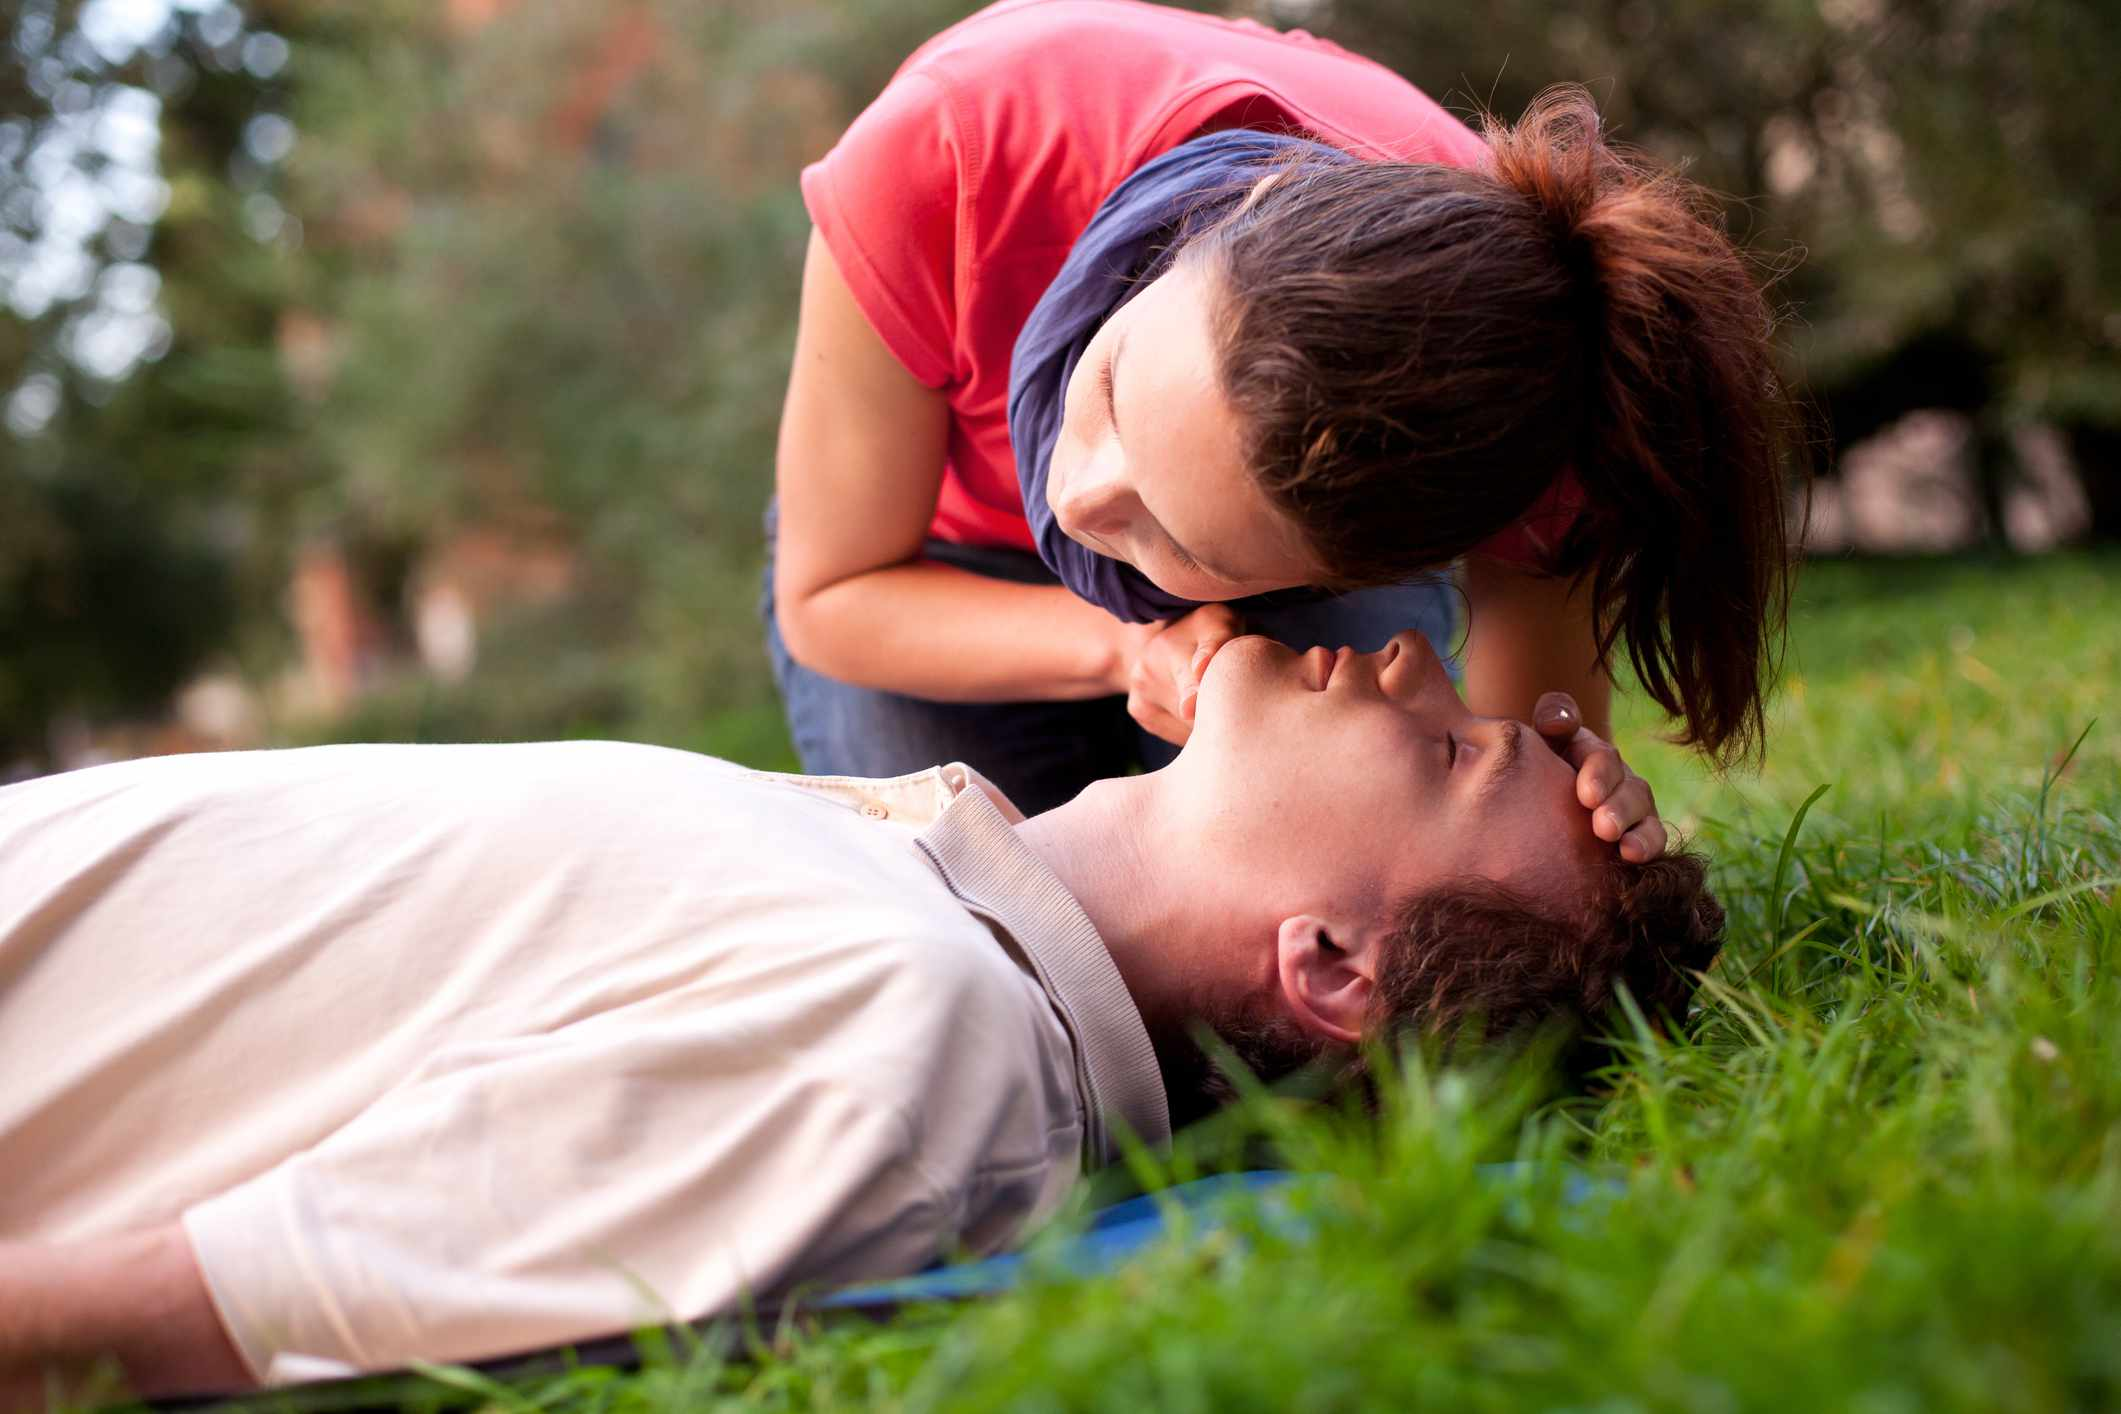 A woman applying CPR on a man